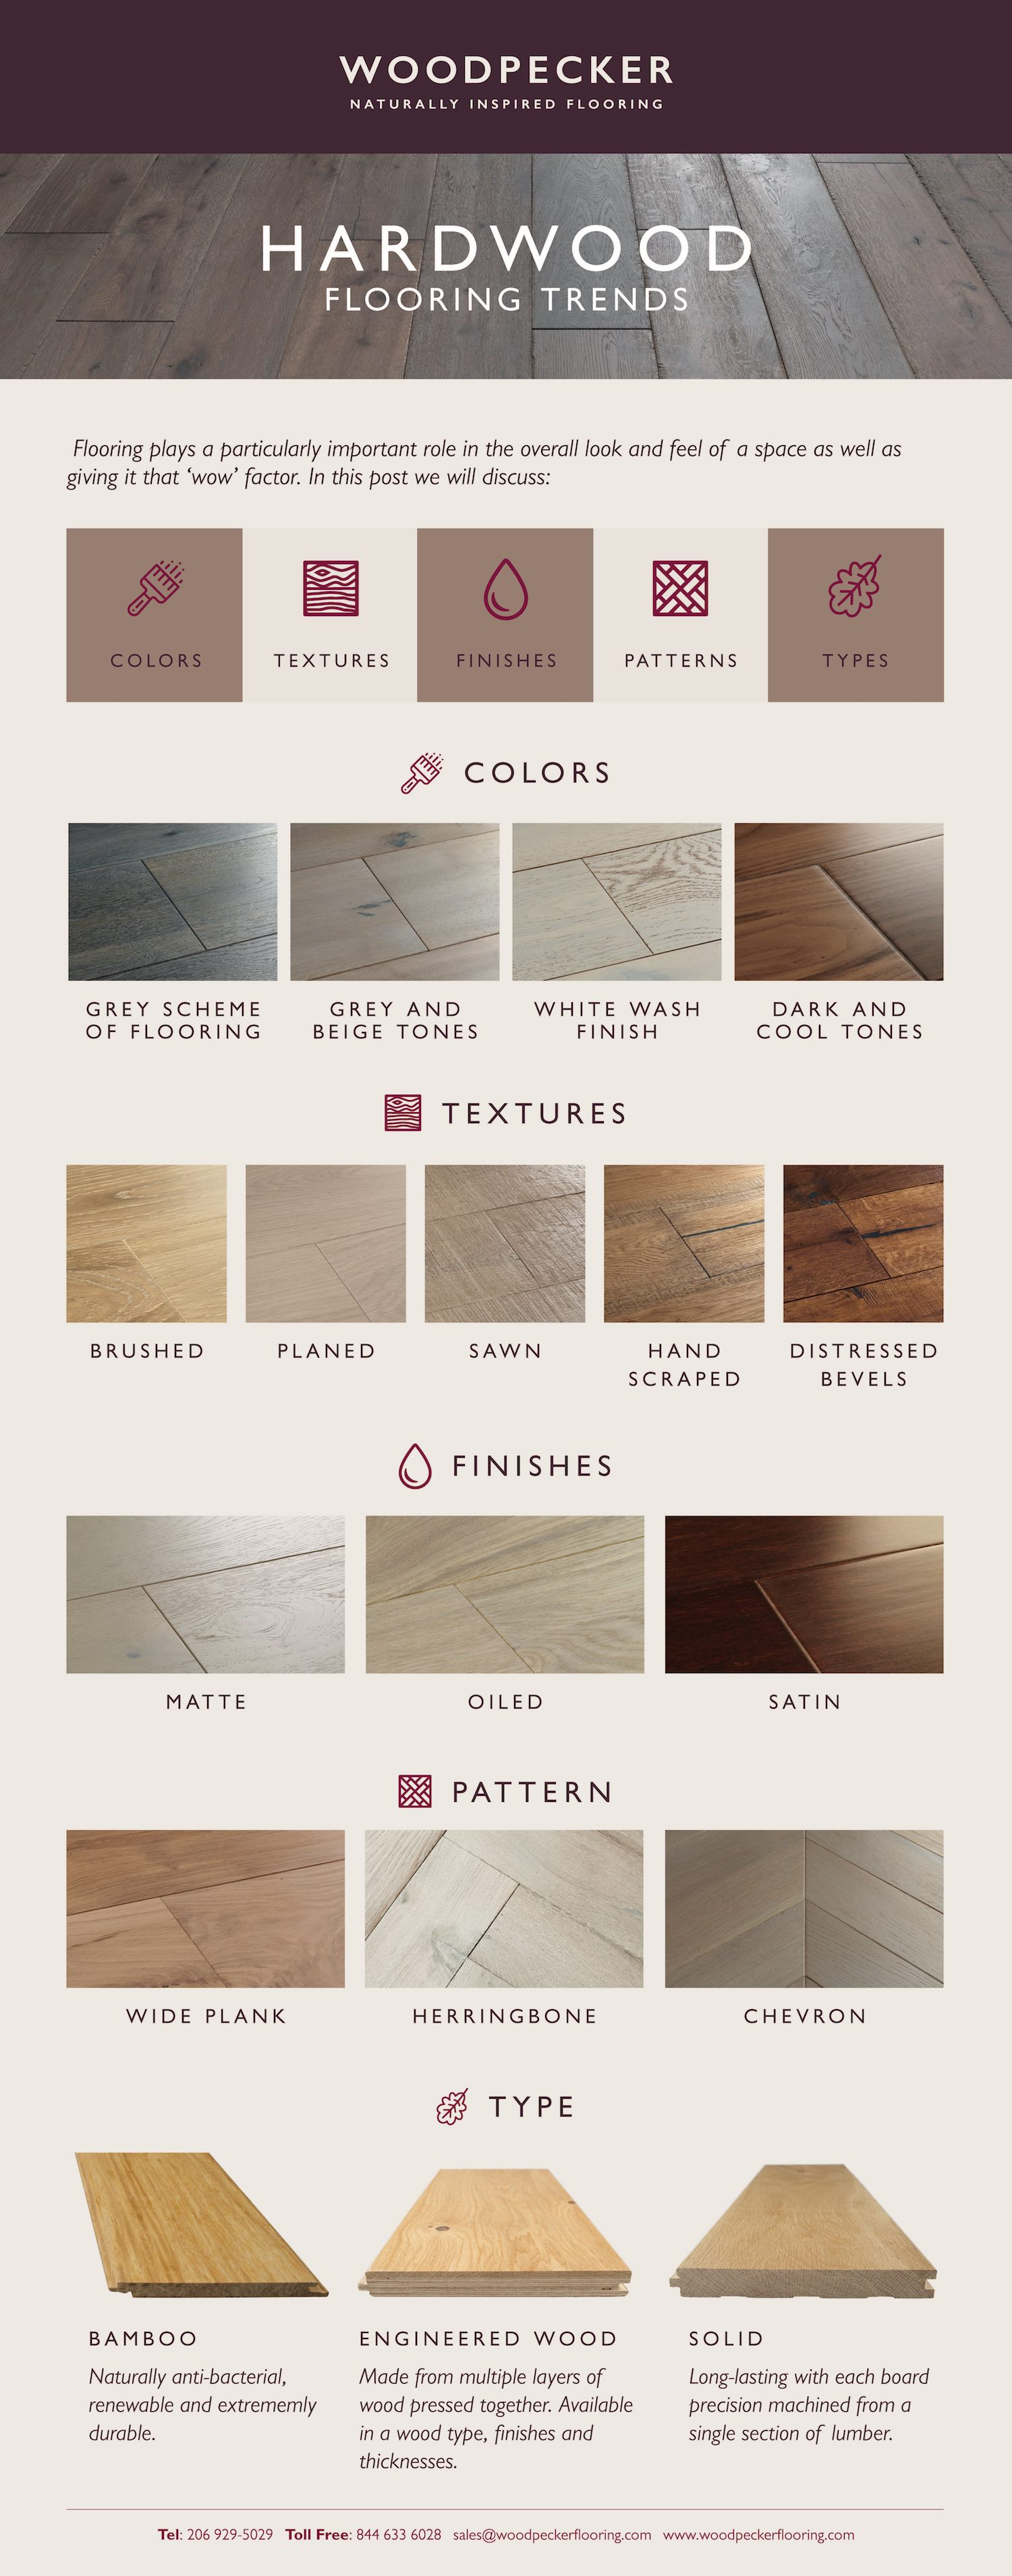 woodpecker flooring infographic flooring trends